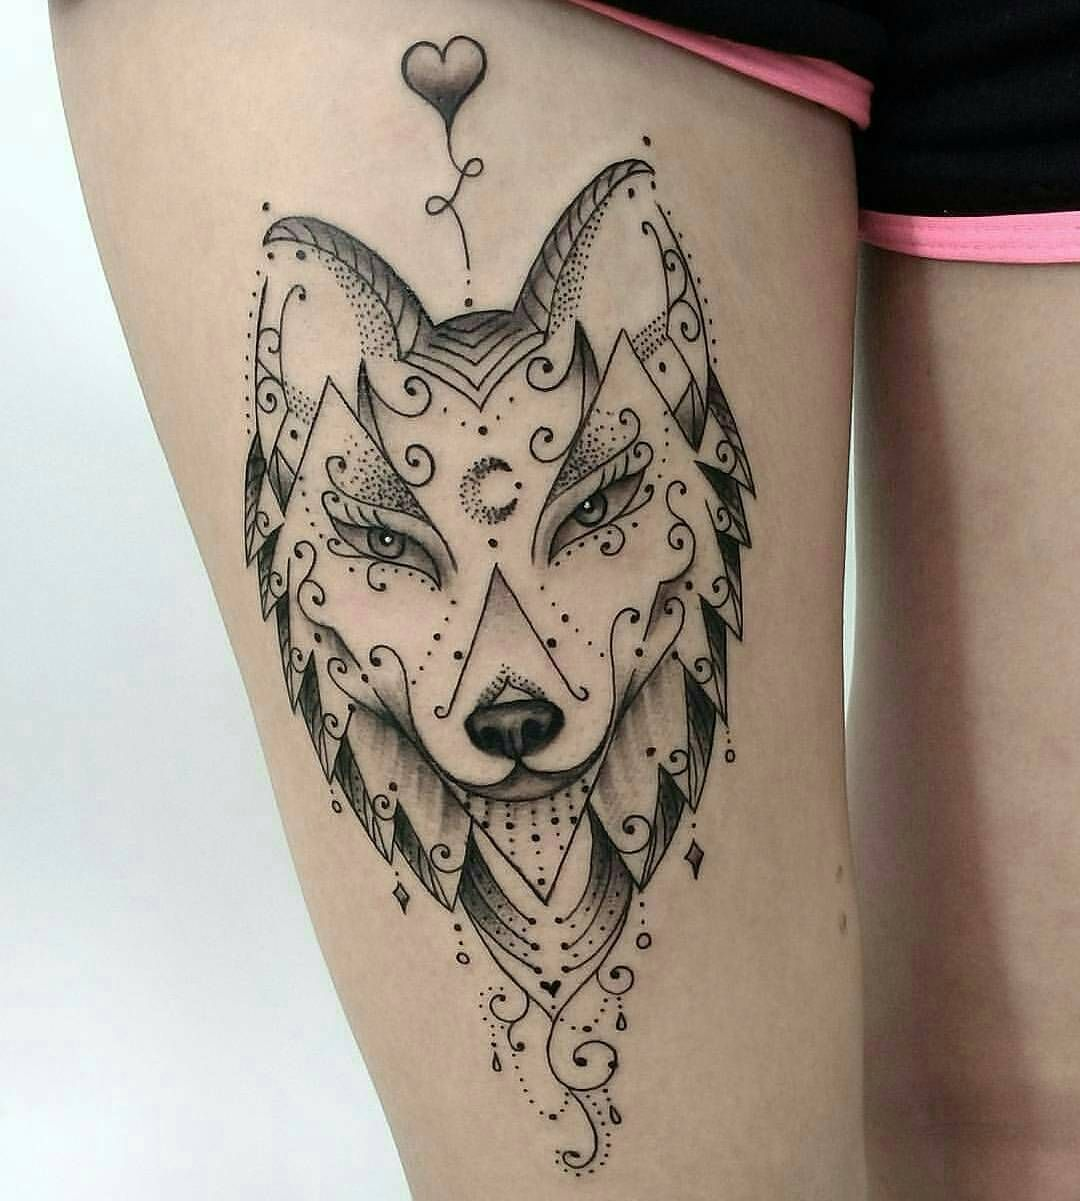 50 Of The Most Beautiful Wolf Tattoo Designs The Internet Has Ever Seen Girly Tattoos Tattoos Wolf Tattoos For Women